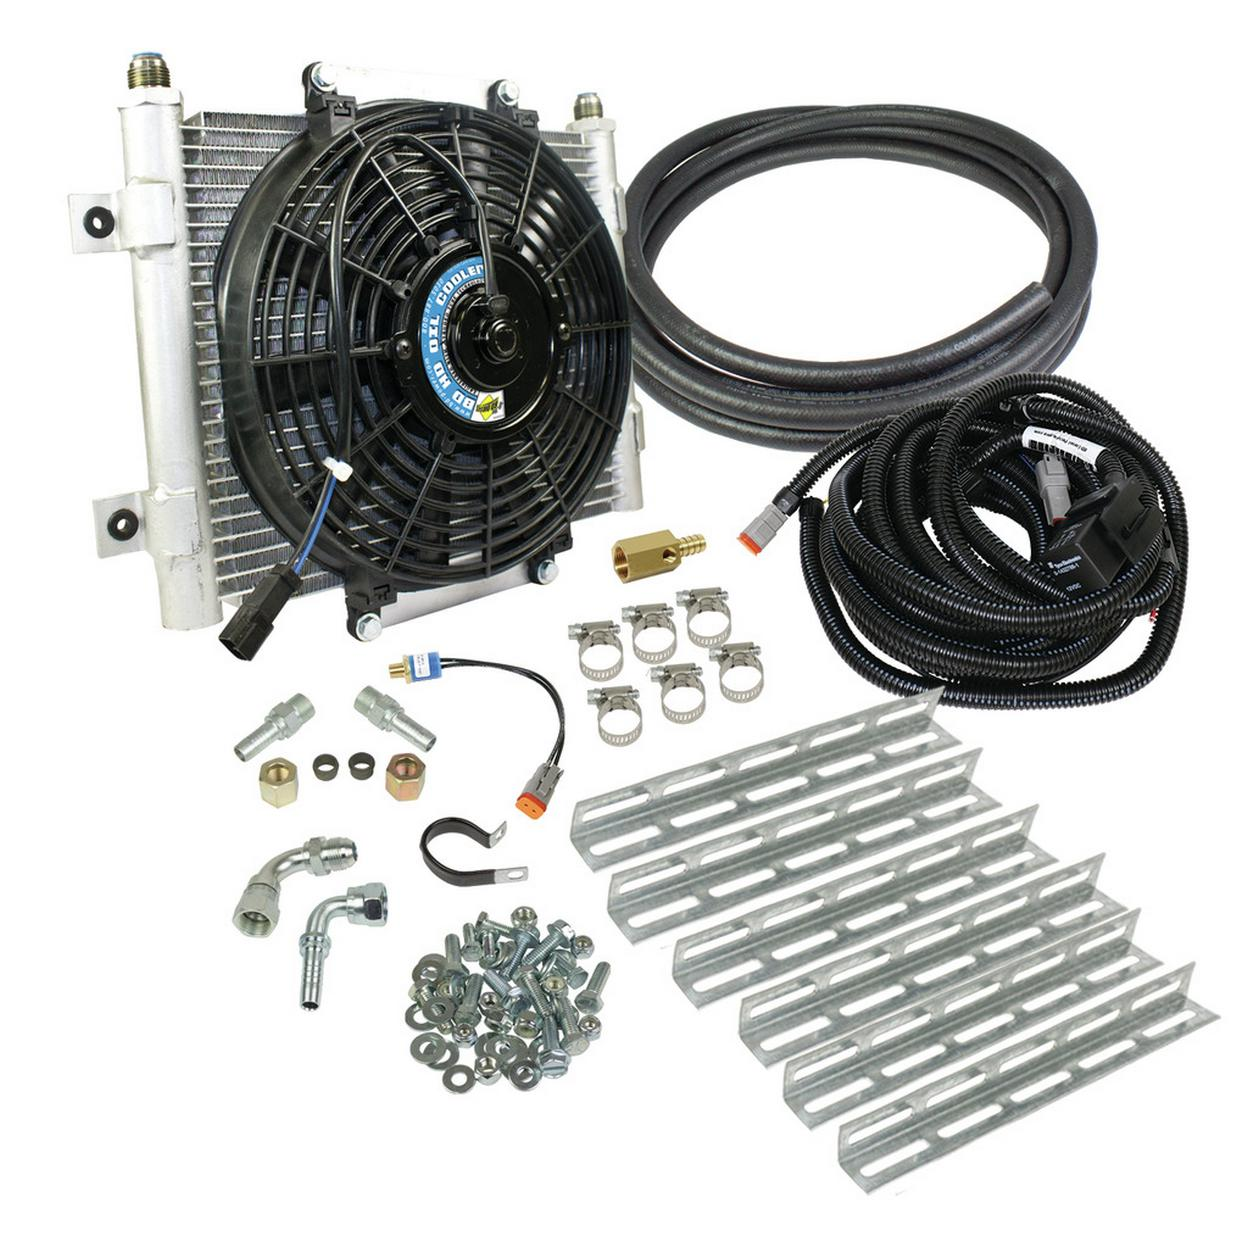 Xtruded Trans Oil Cooler - 5/16 inch Cooler Lines